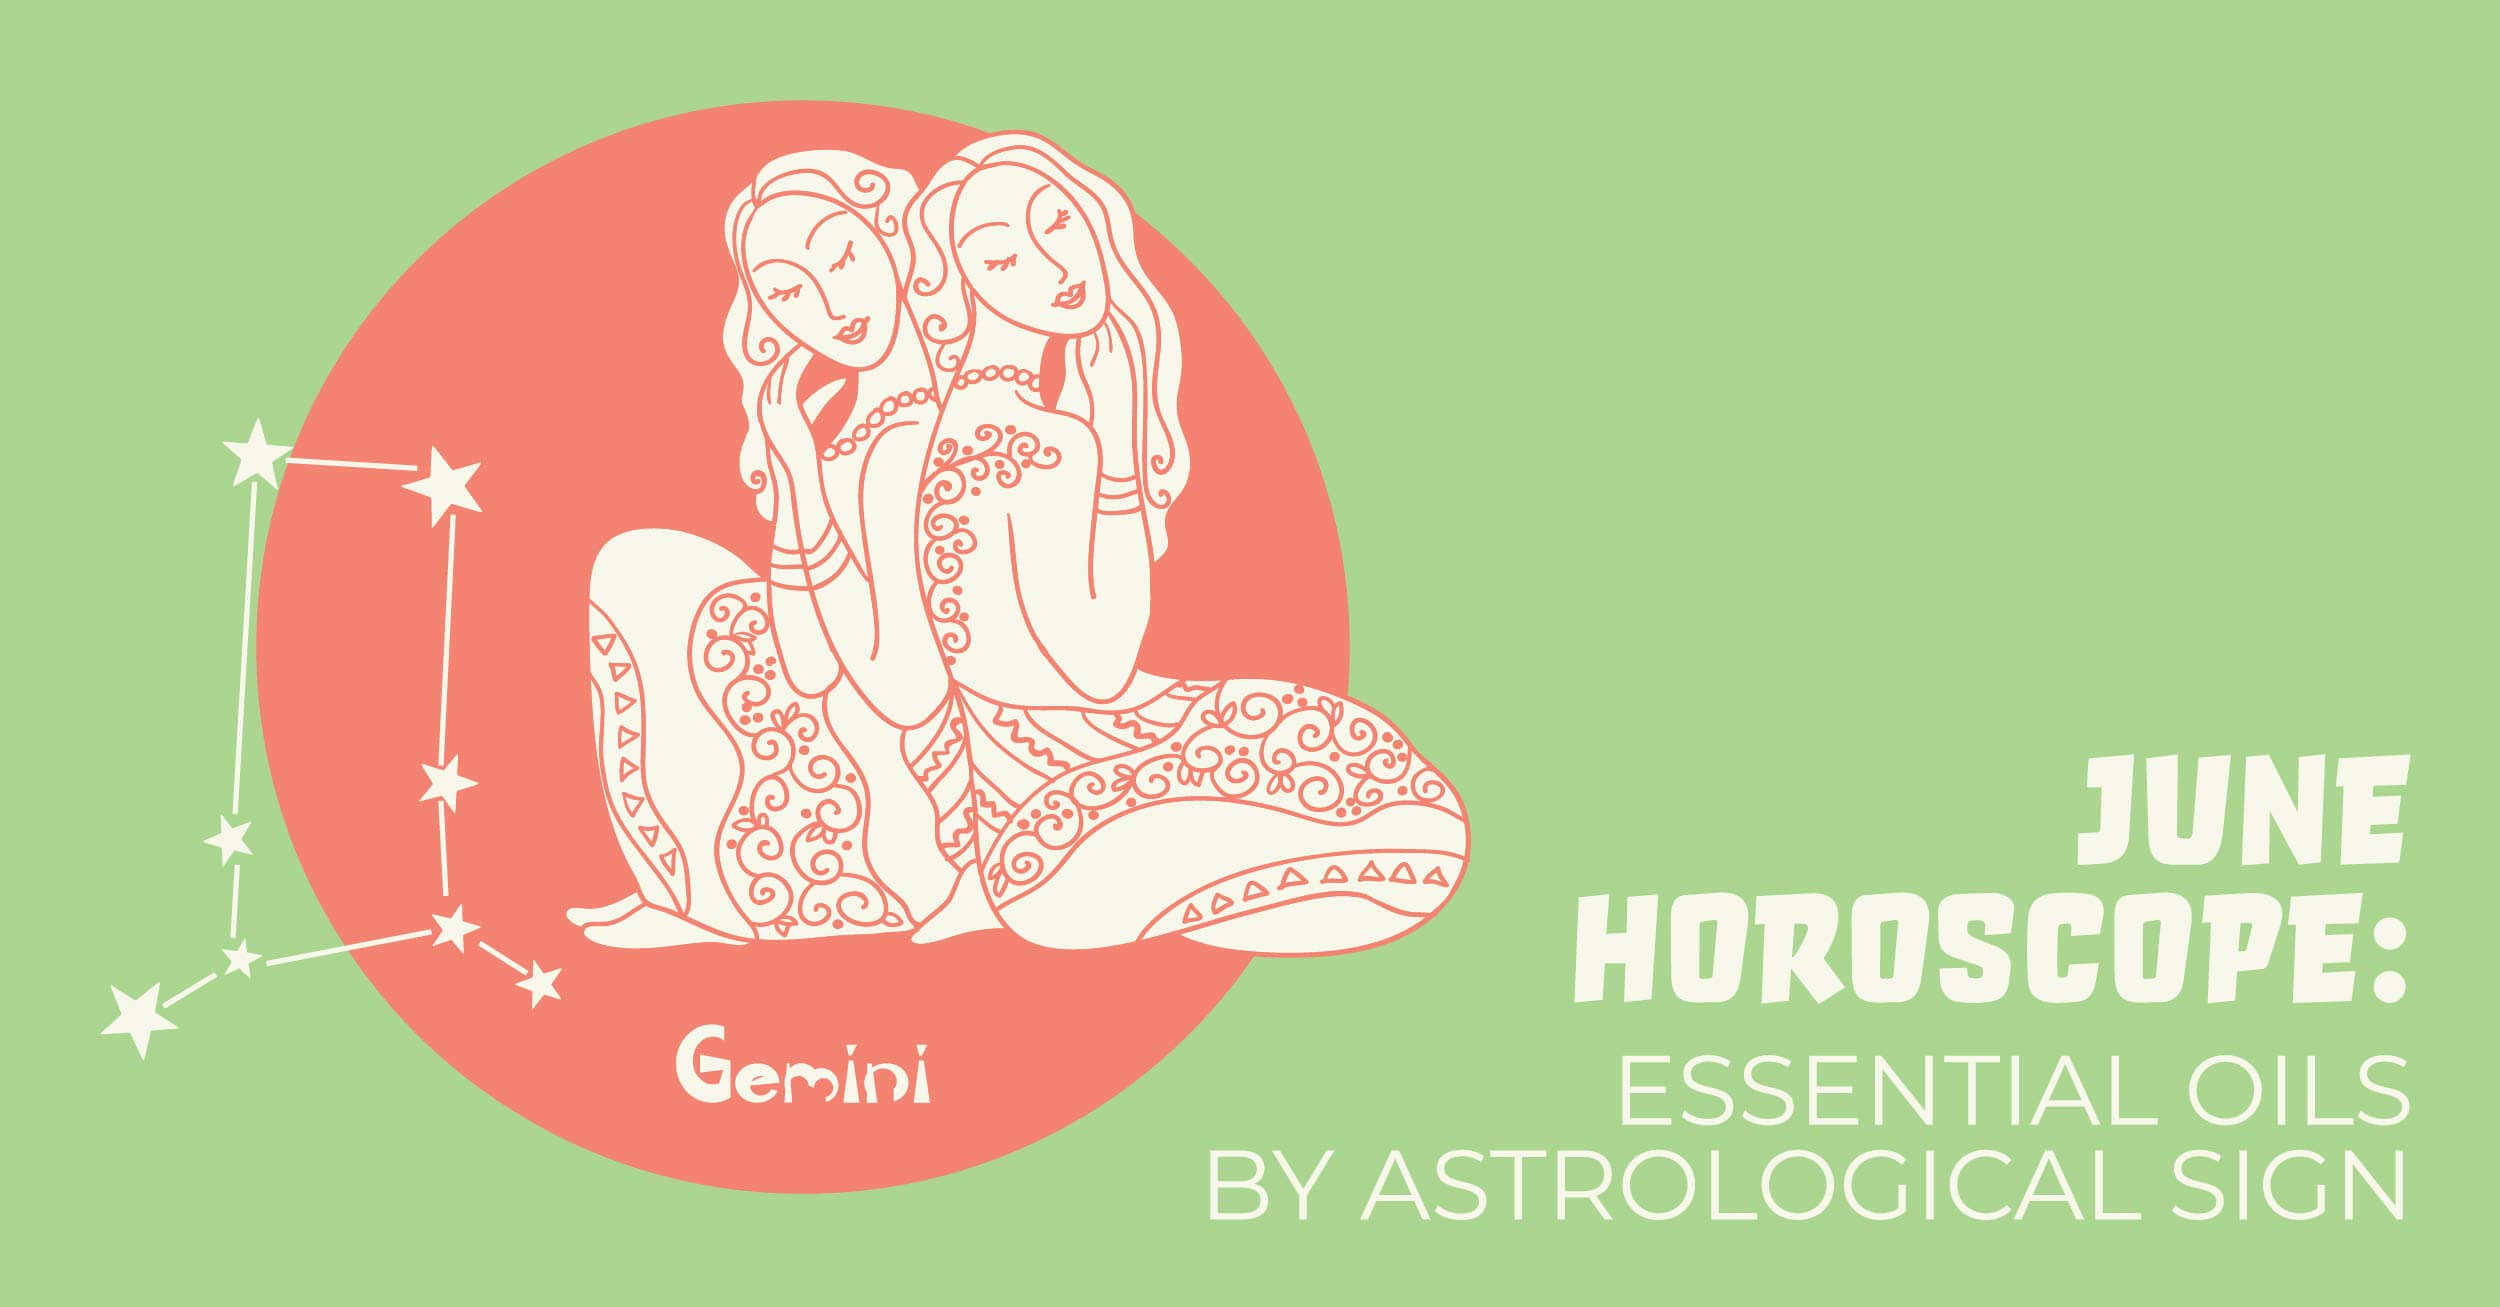 June Horoscope: Essential Oils by Astrological Sign